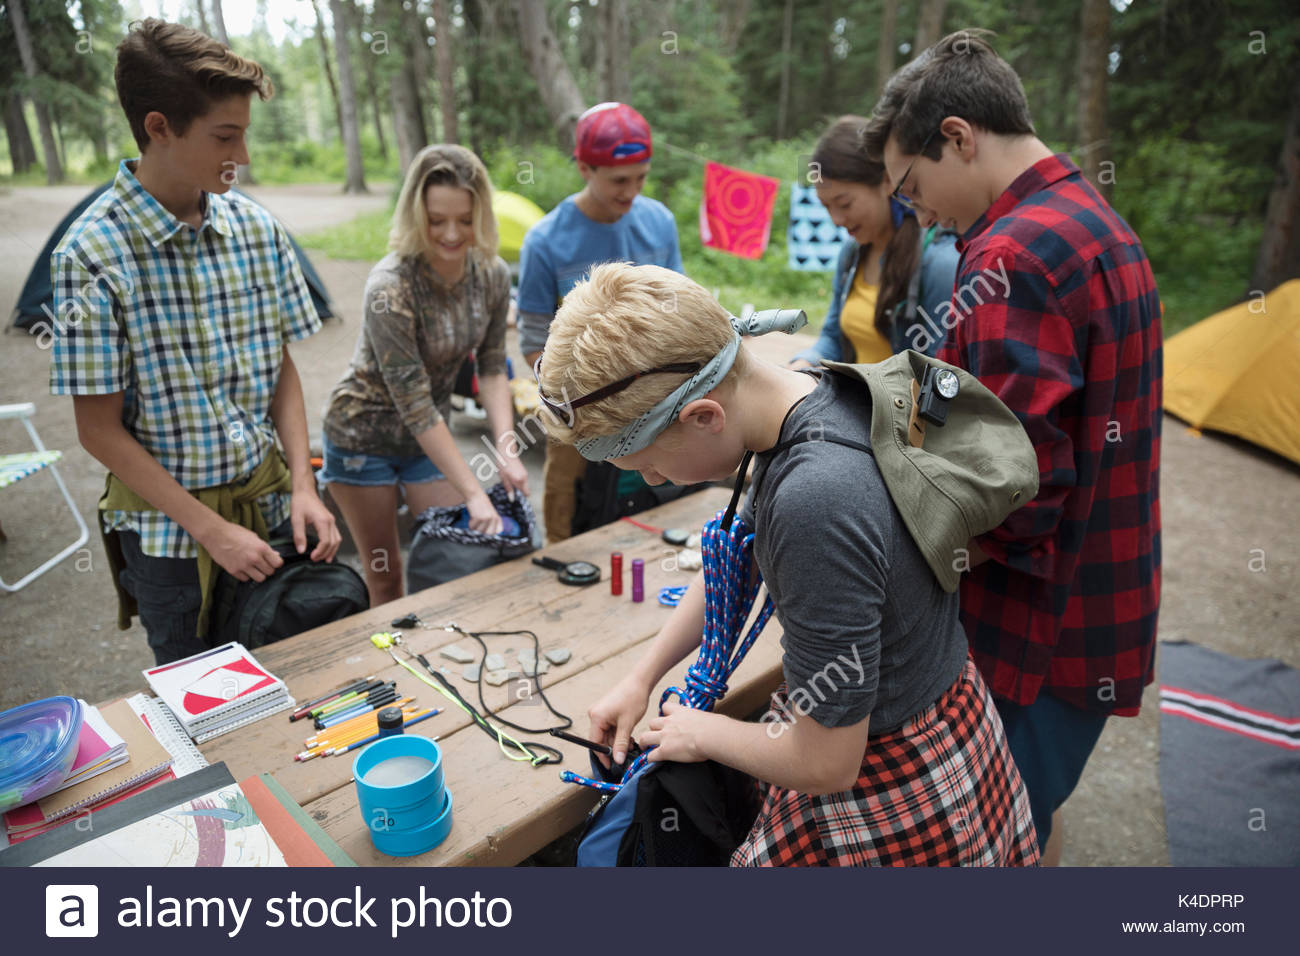 Students packing equipment in backpacks at outdoor school campsite picnic table - Stock Image